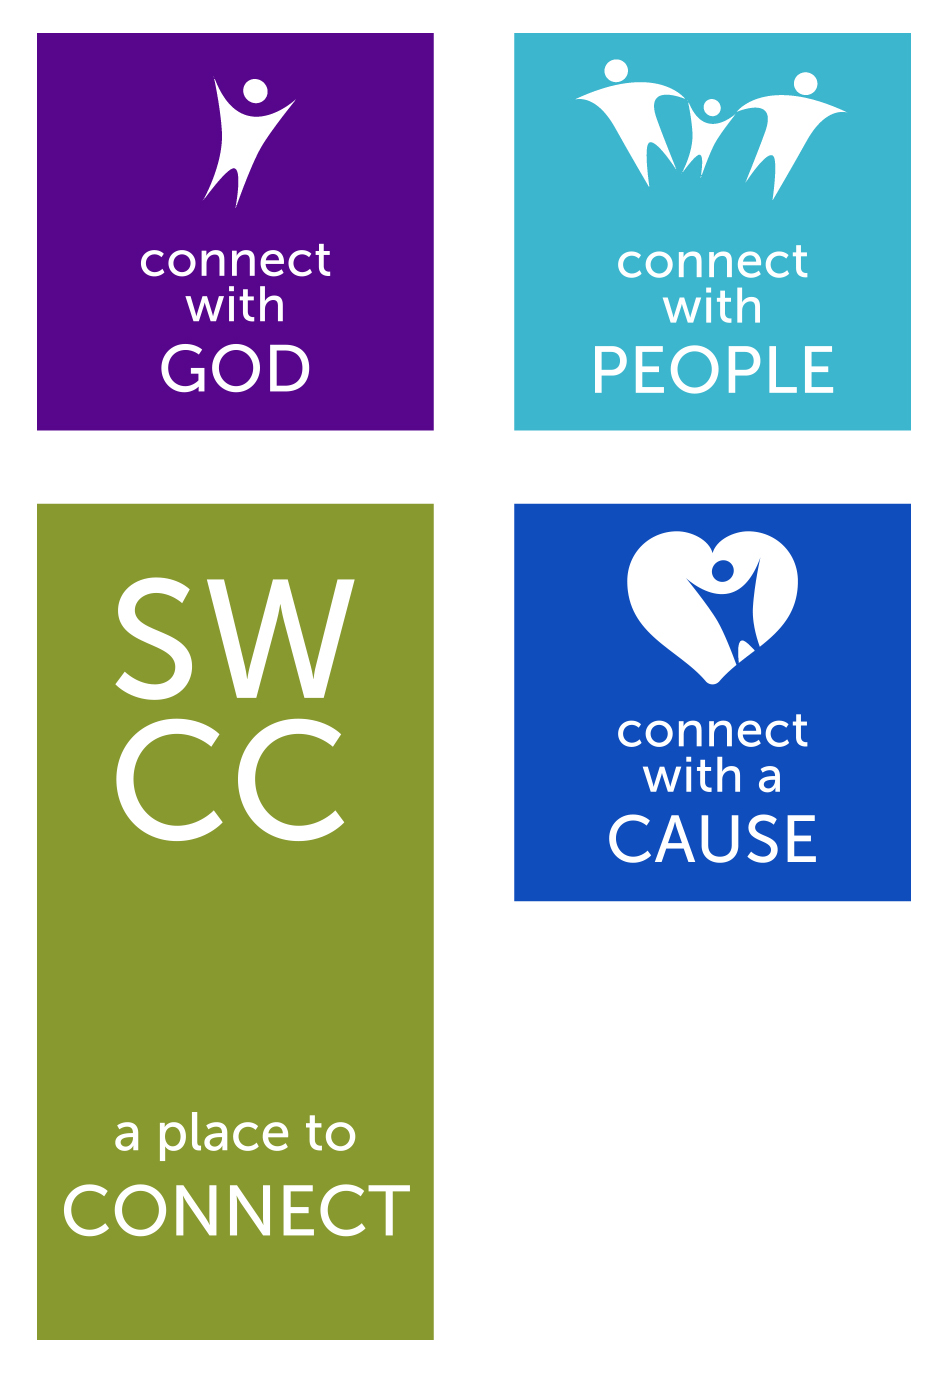 framework diagram - connect with god, people, cause